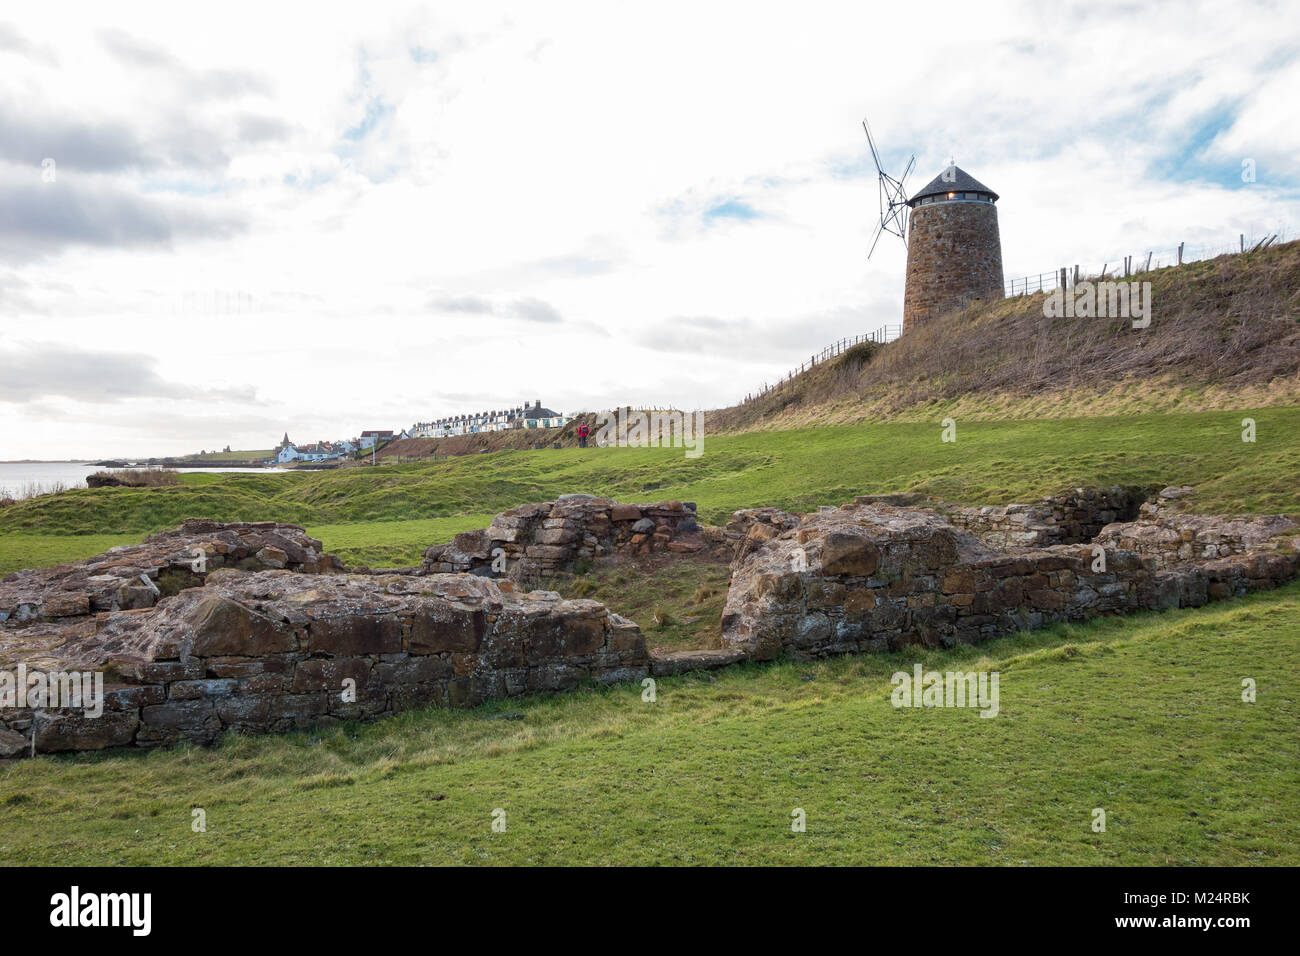 St Monan's Windmill and salt pans, with St Monan's in the distance, Fife, Scotland, UK Stock Photo